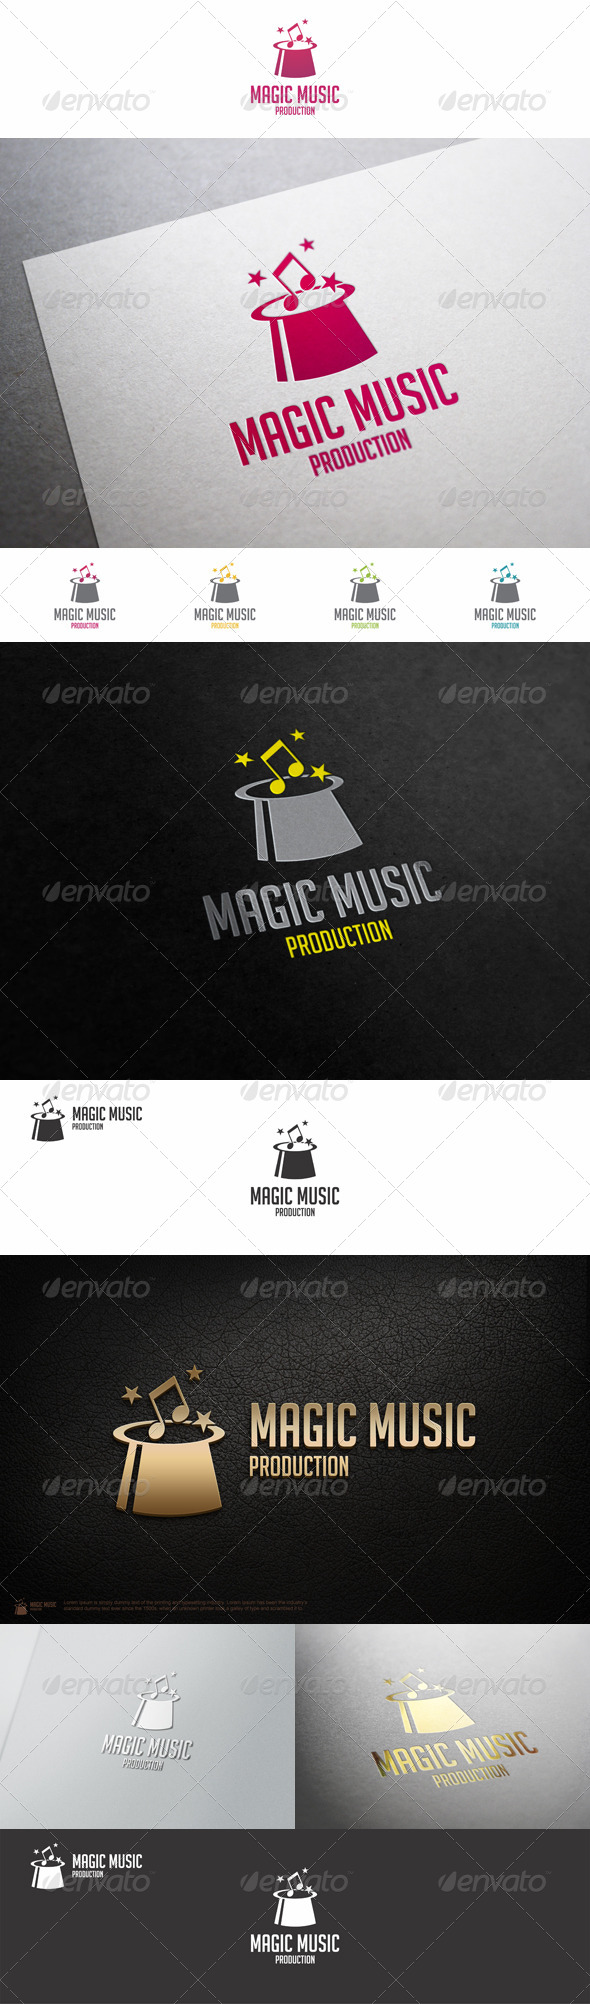 Magic Music Studio Logo - Objects Logo Templates